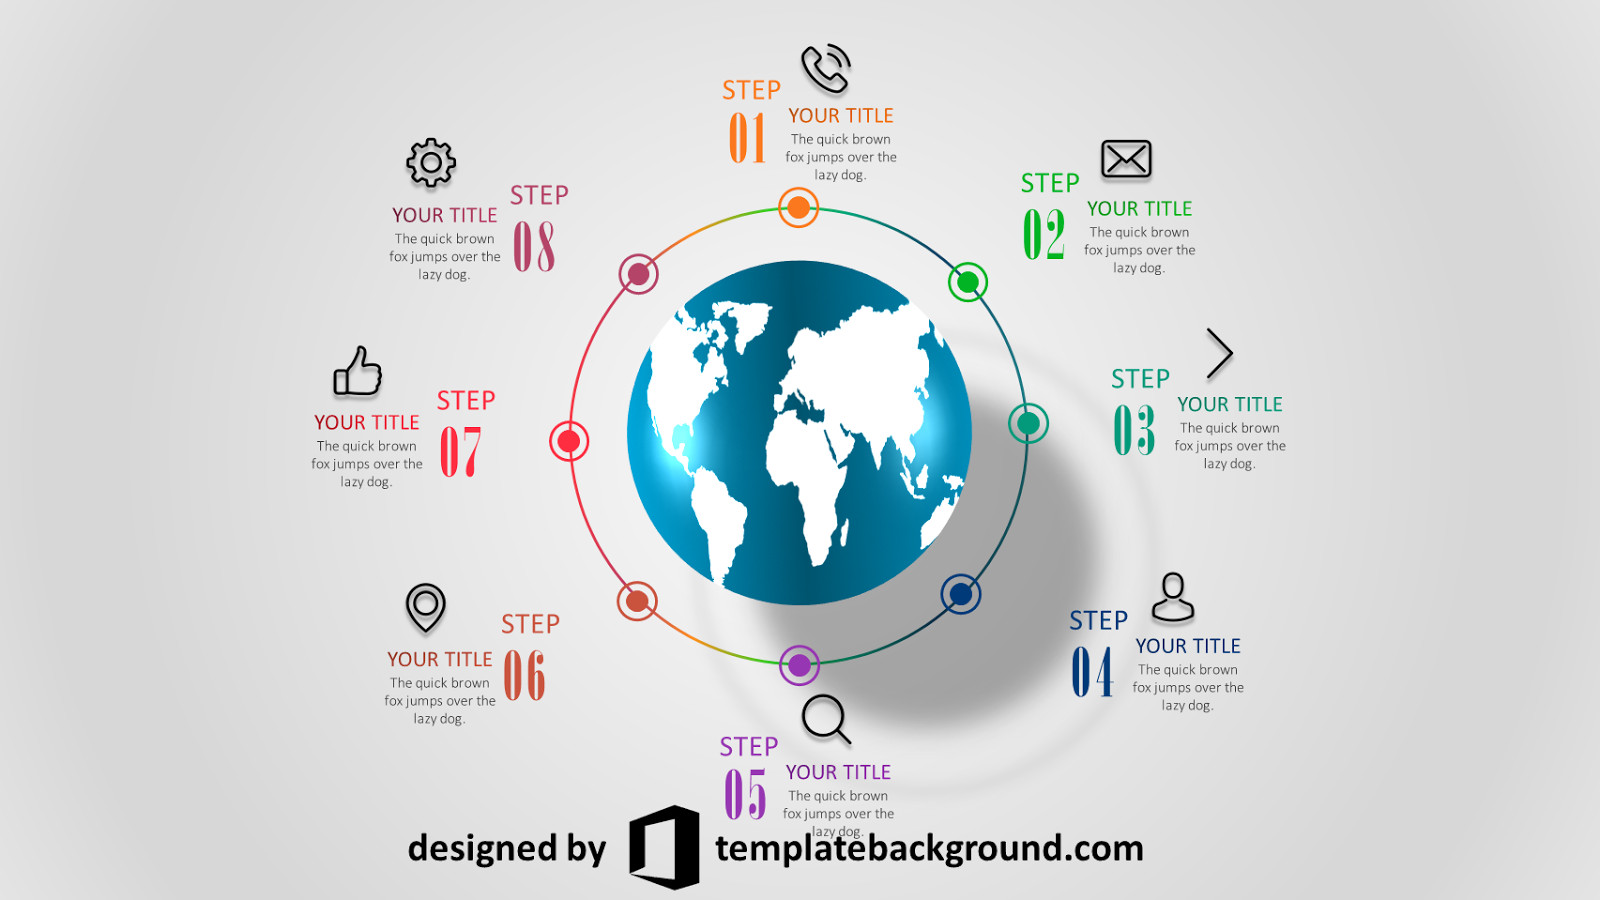 Free 3d Animated Powerpoint Templates Animated Png for Ppt Free Download Transparent Animated